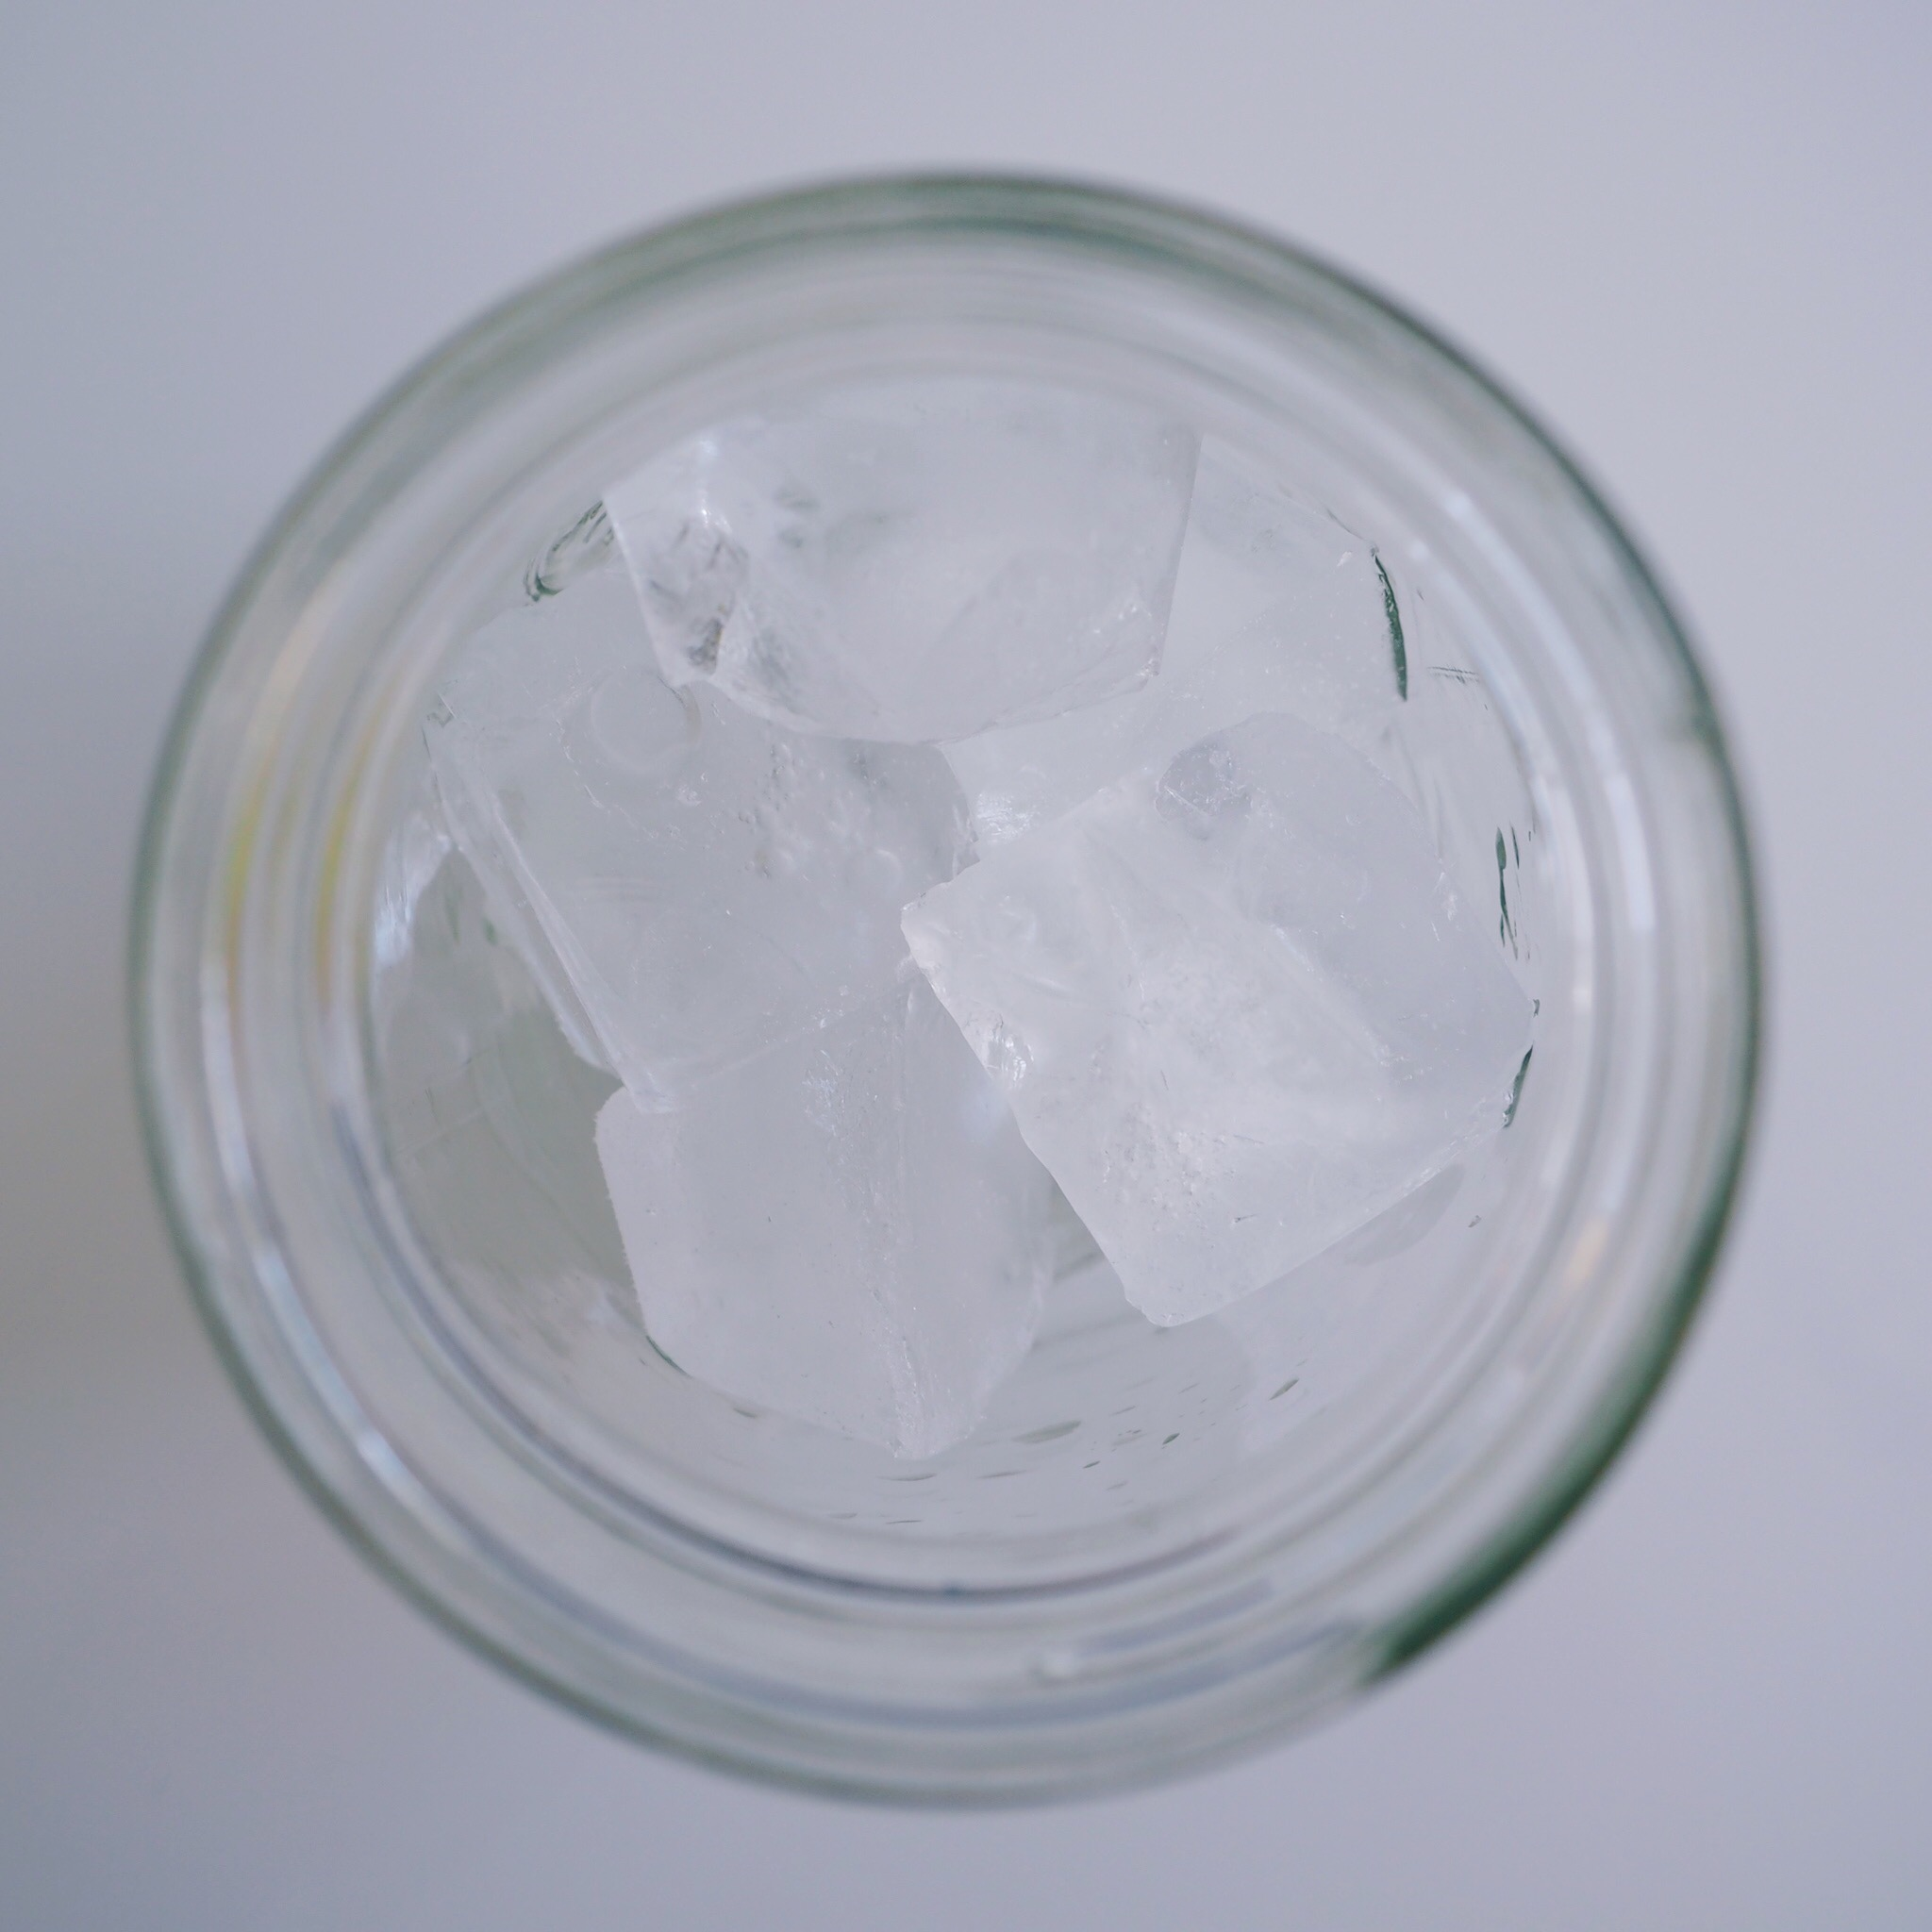 Fill glass with ice